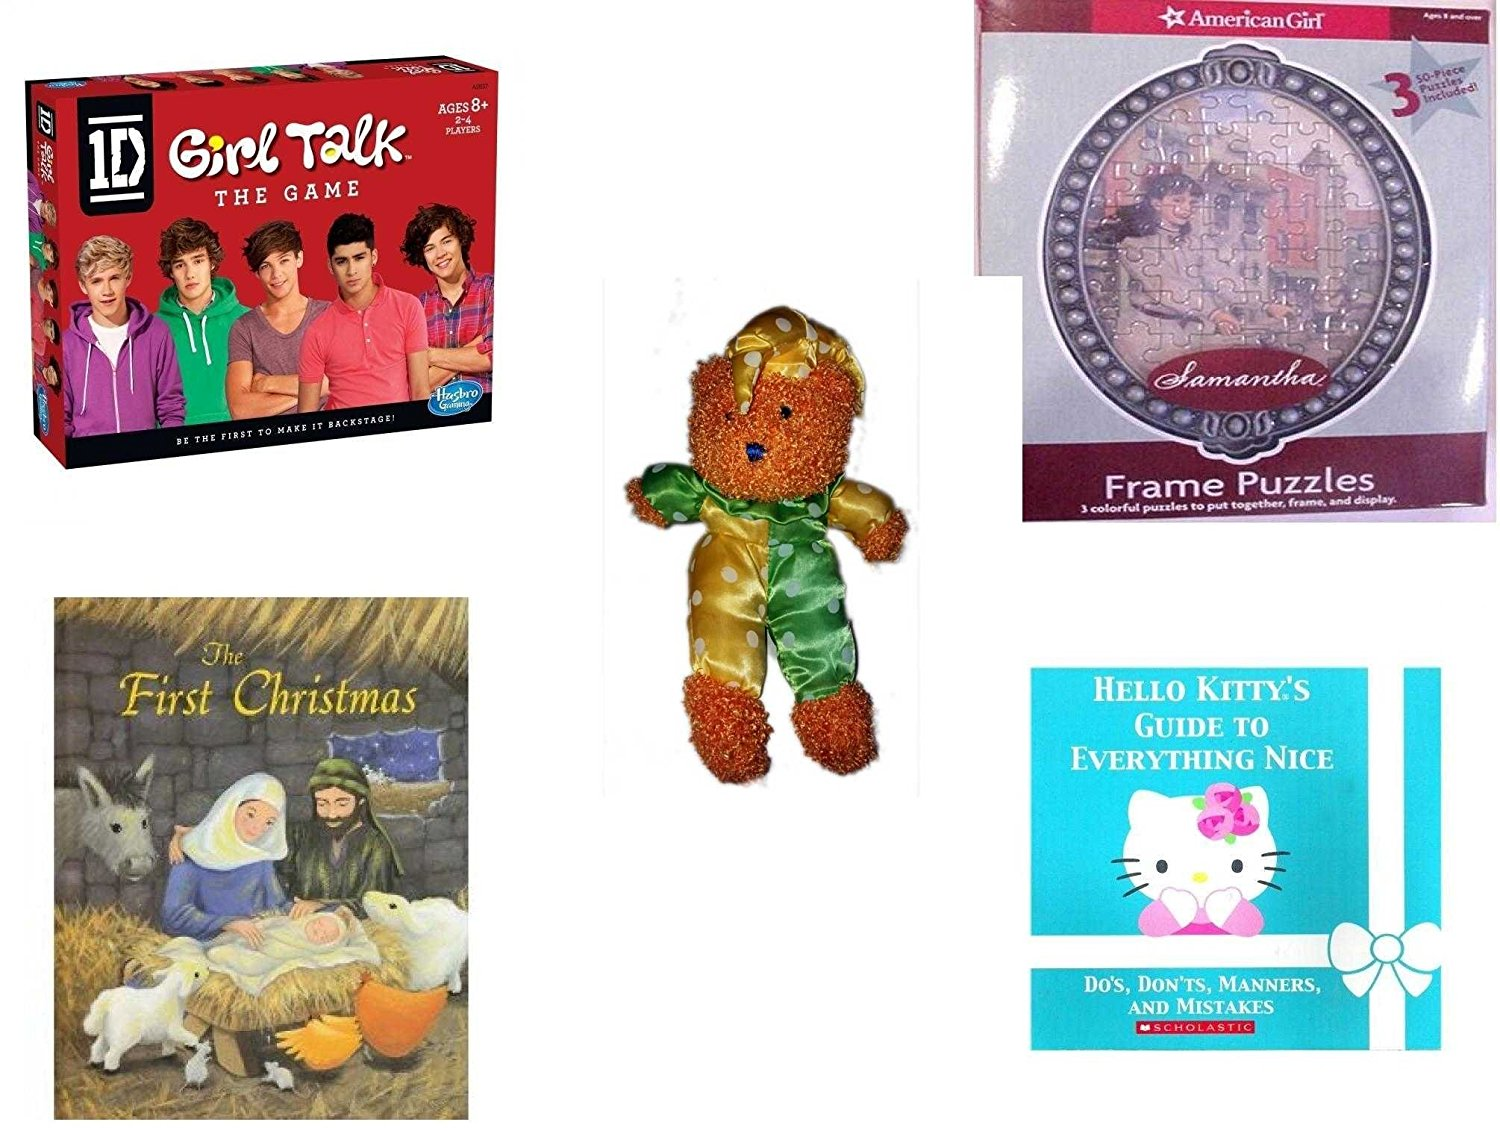 Girl's Gift Bundle - Ages 6-12 [5 Piece] - 1D Girl Talk The Game One Direction - American Girl Frame Puzzles Samantha. - Sugar Loaf Creations Jester Bear Plush - The First Christmas Hardcover Book -